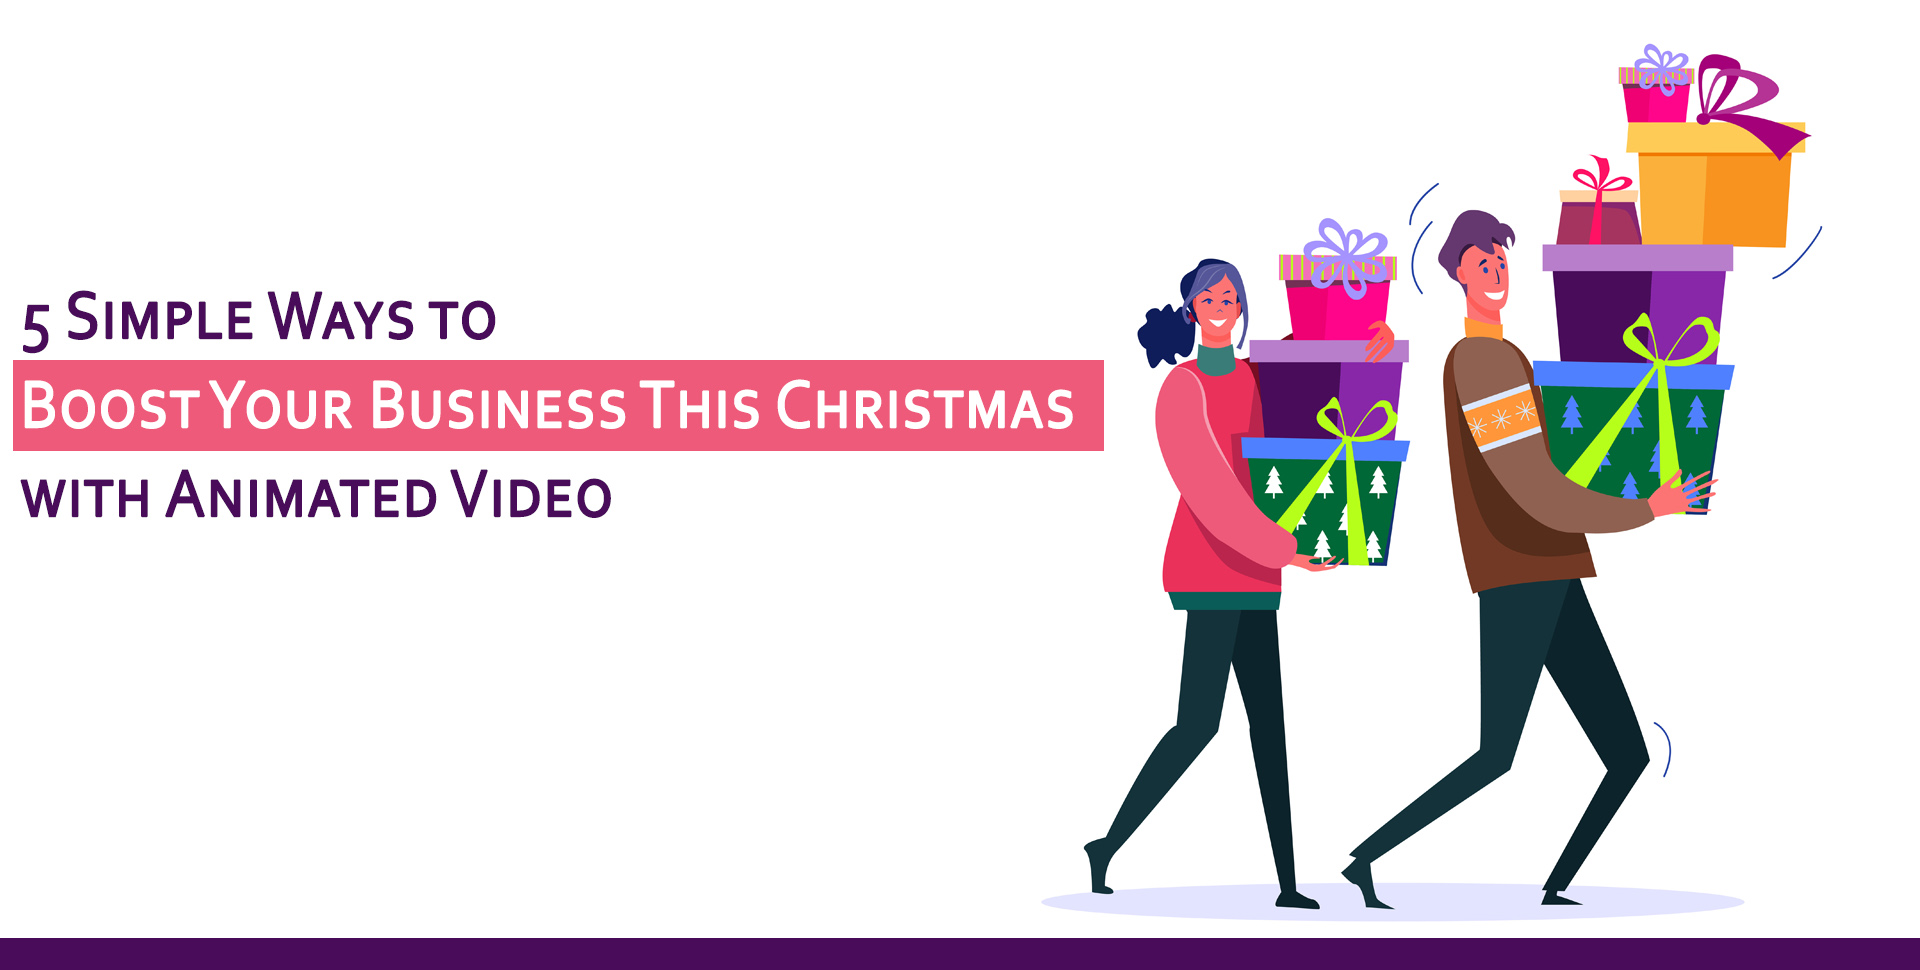 5 Simple Ways to Boost Your Business This Christmas with Animated Video